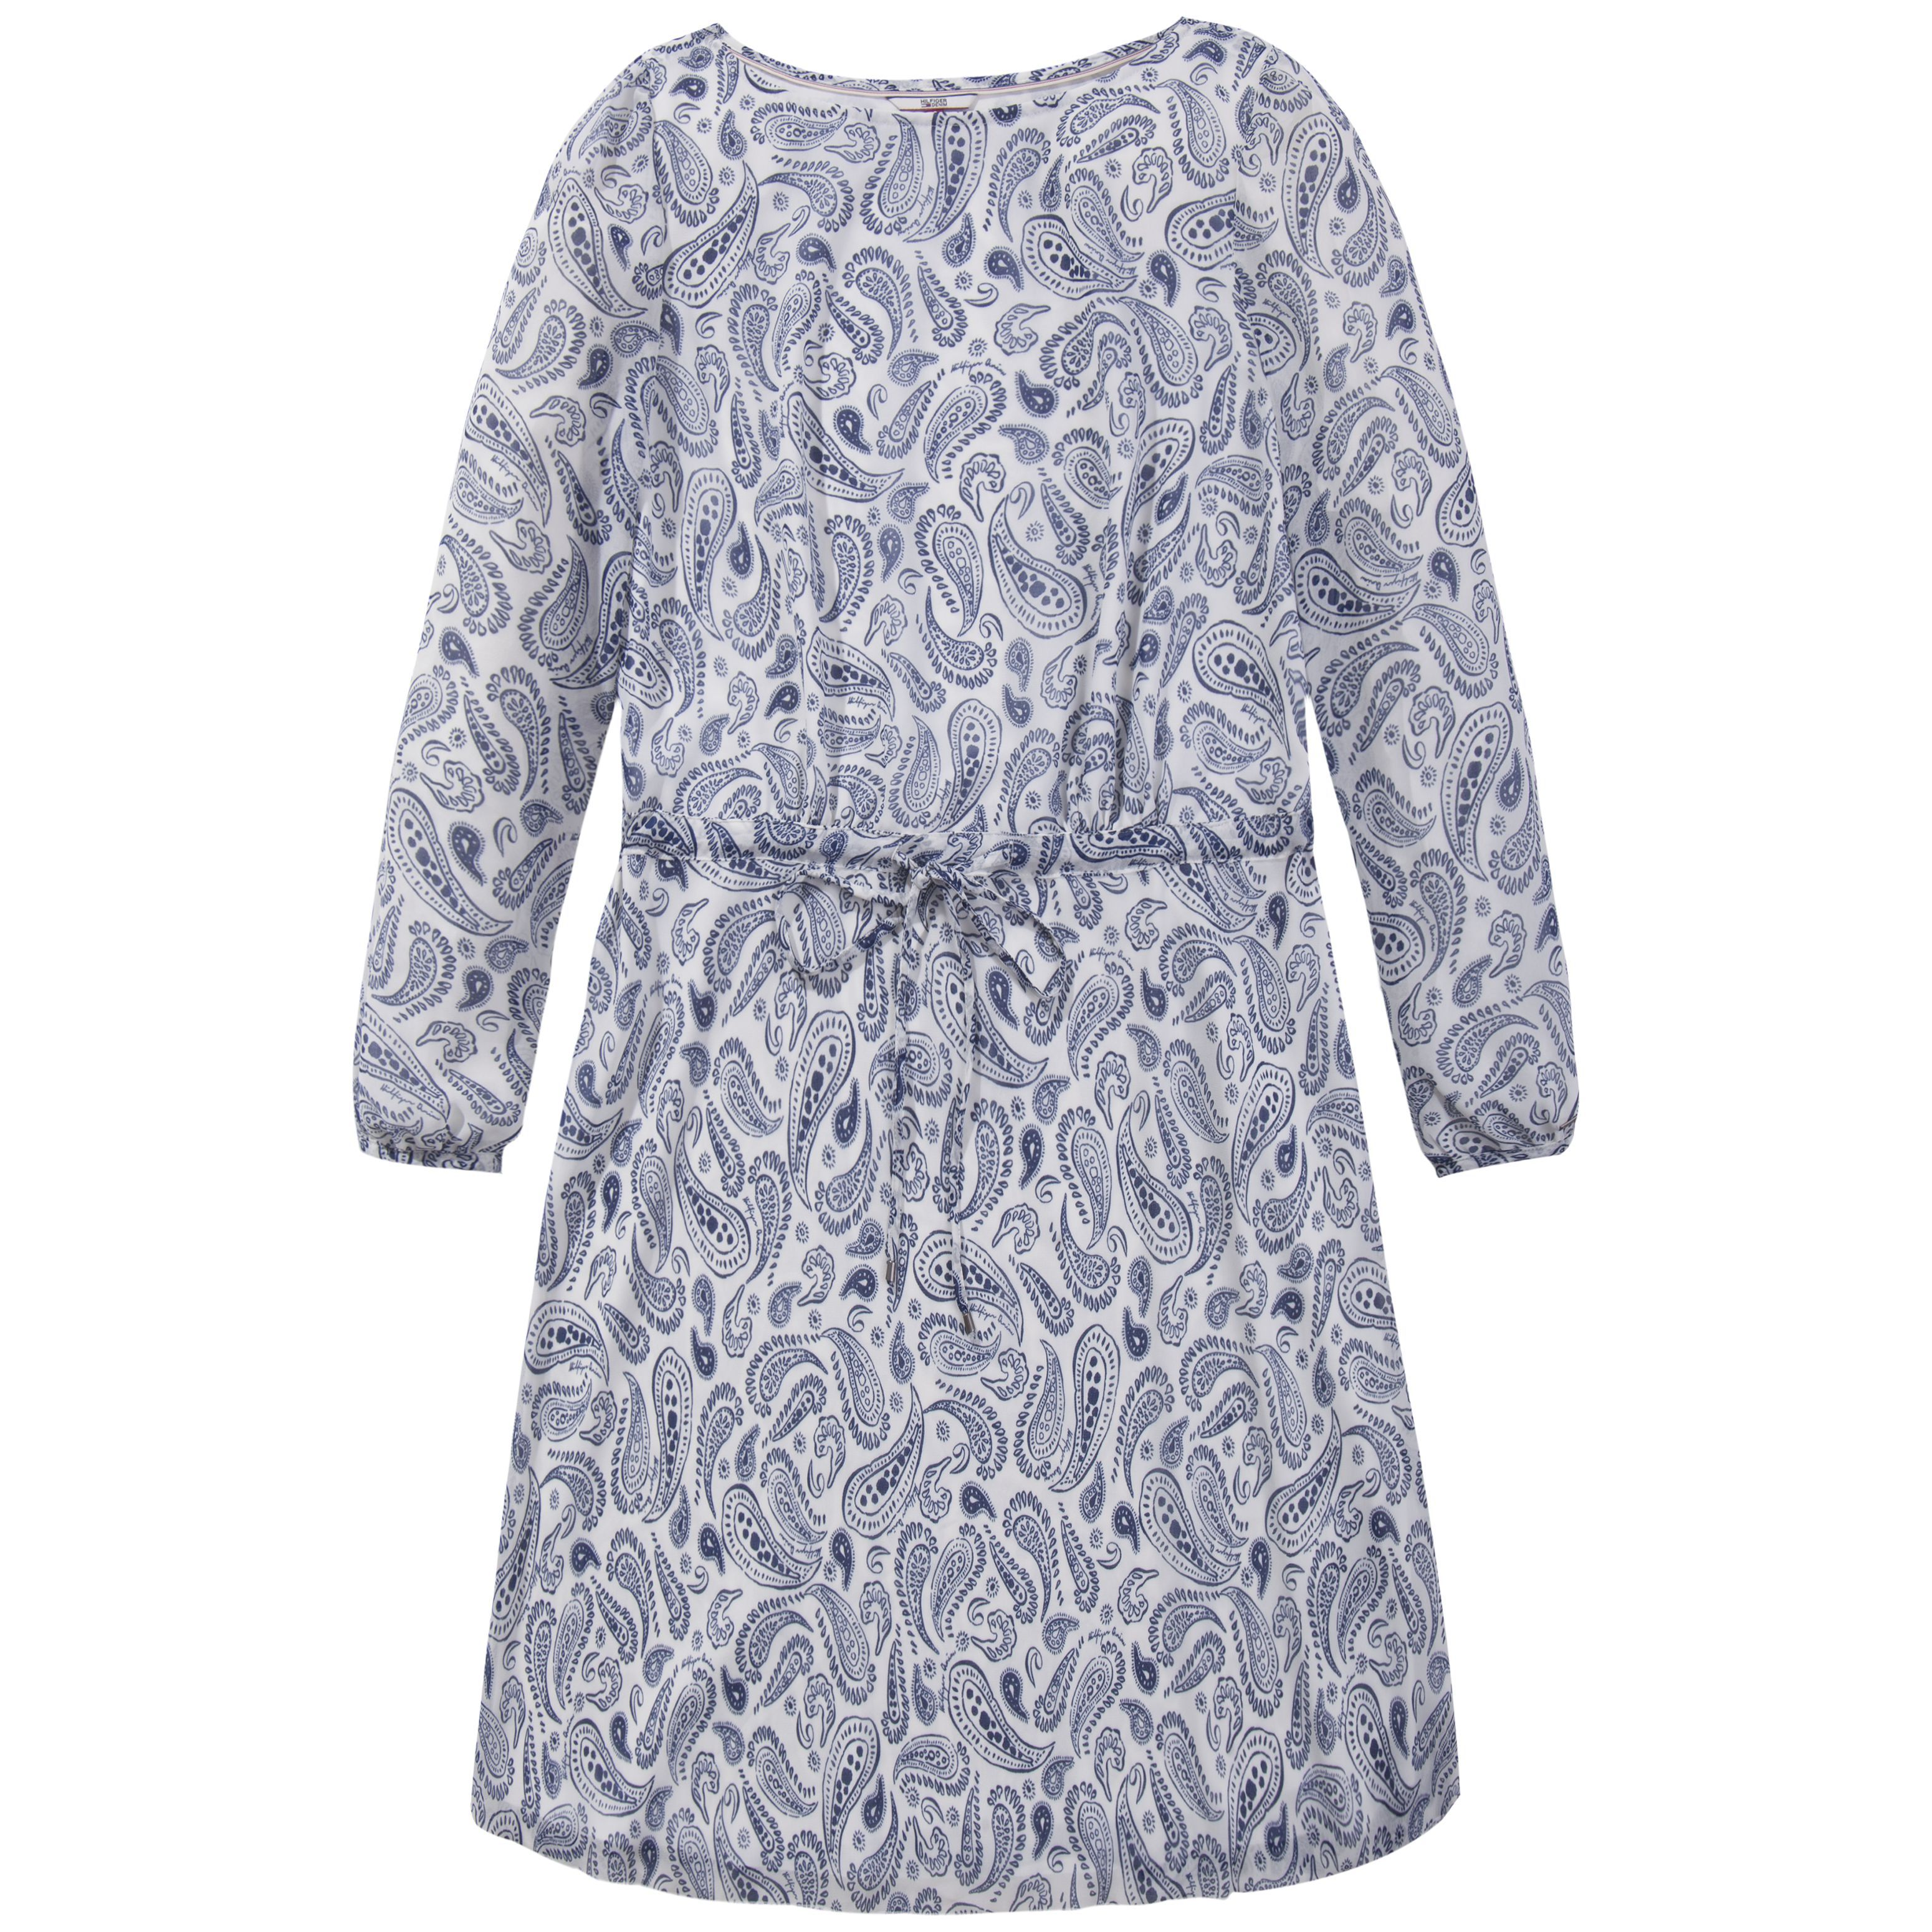 Tommy Hilfiger Paisley Print Dress, Cream